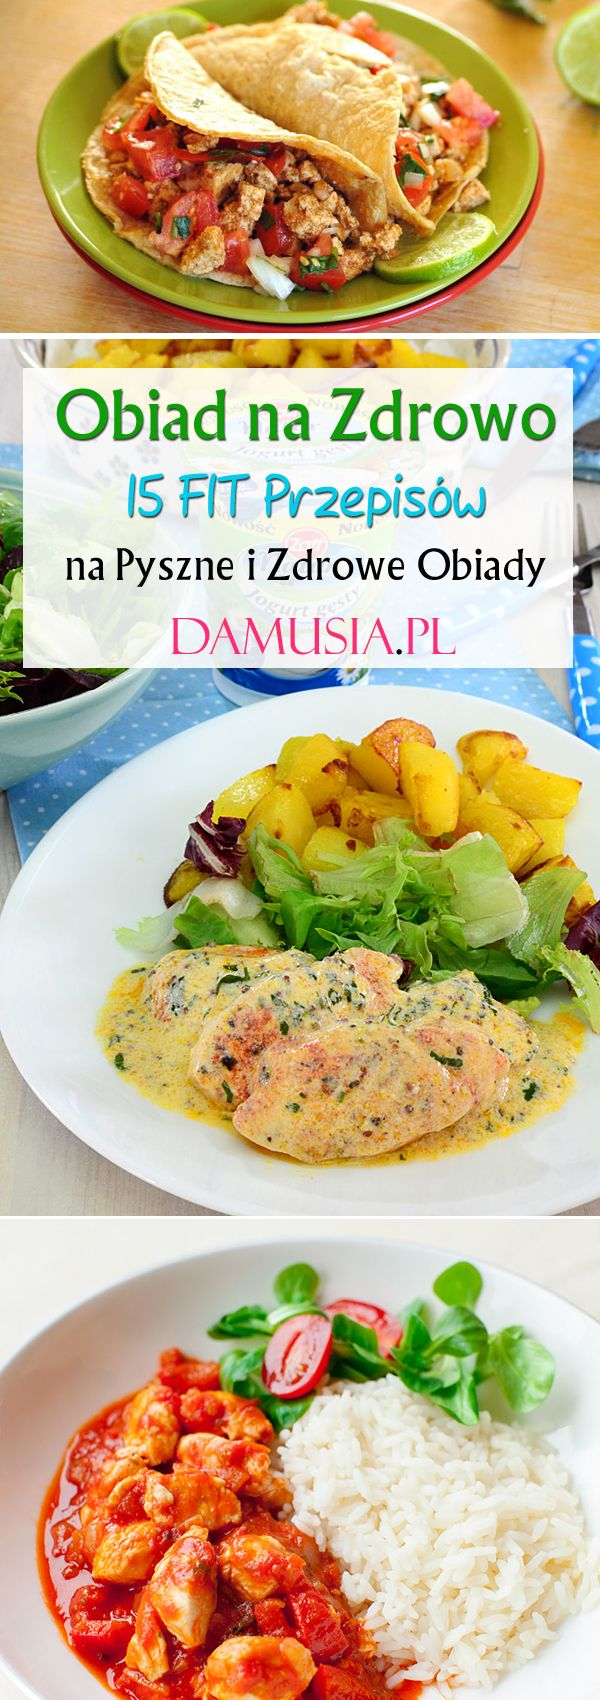 Obiad Na Zdrowo 15 Fit Przepisow Na Zdrowy Obiad Healthy Lunch Healthy Lunch Recipes Workout Eating